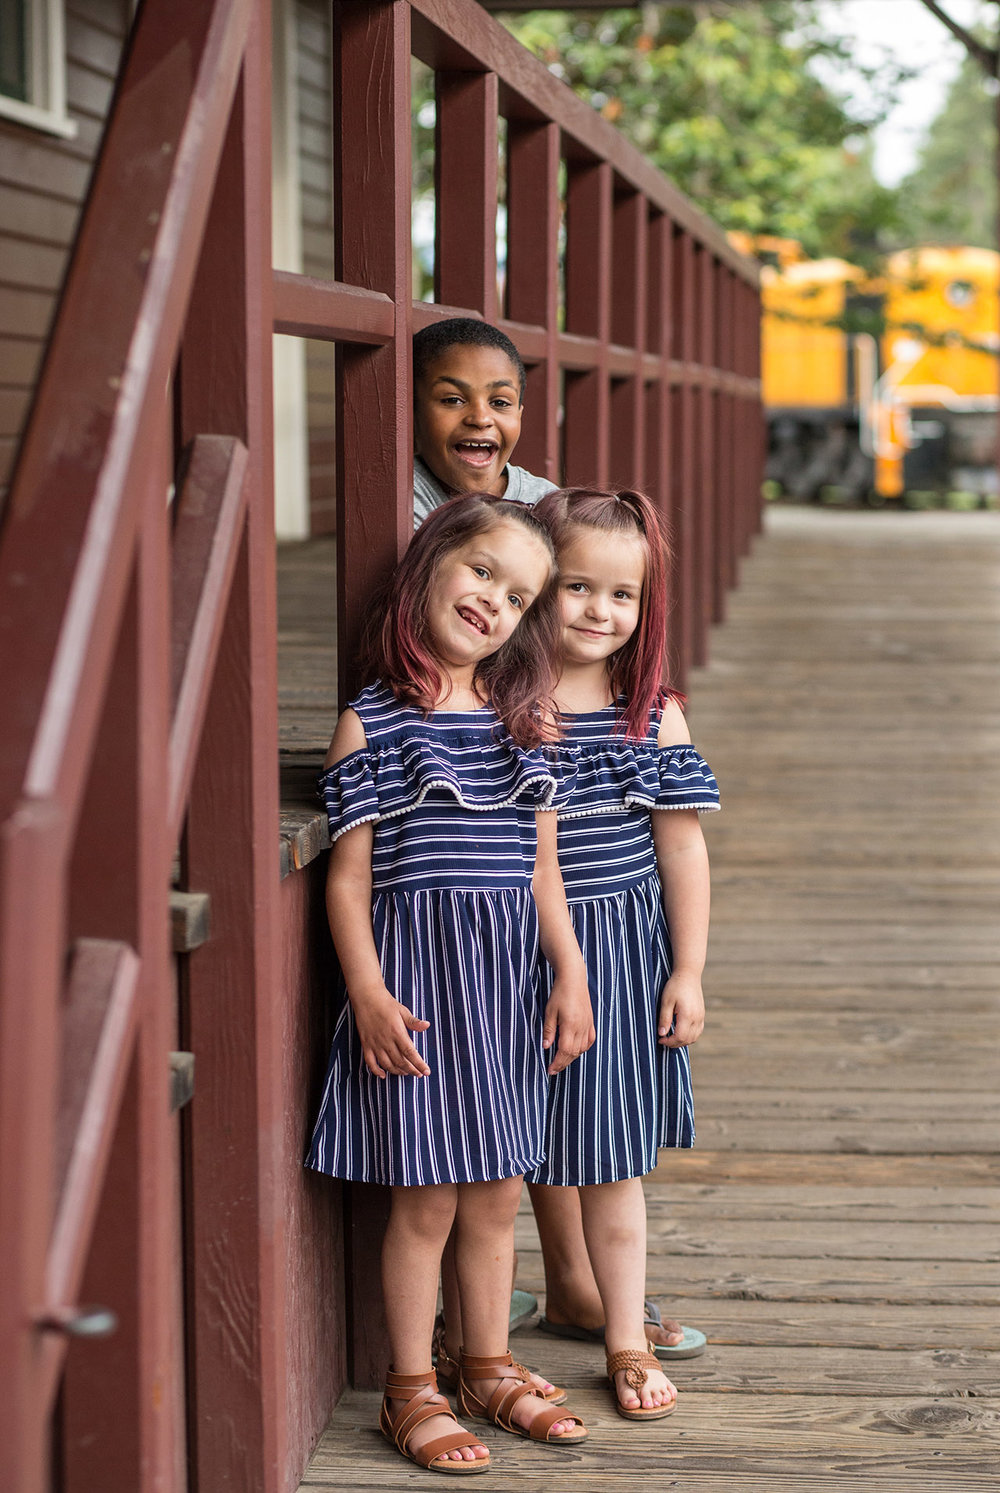 Bellevue WA Family and Childrens Photos Entwined Portraits Seatt